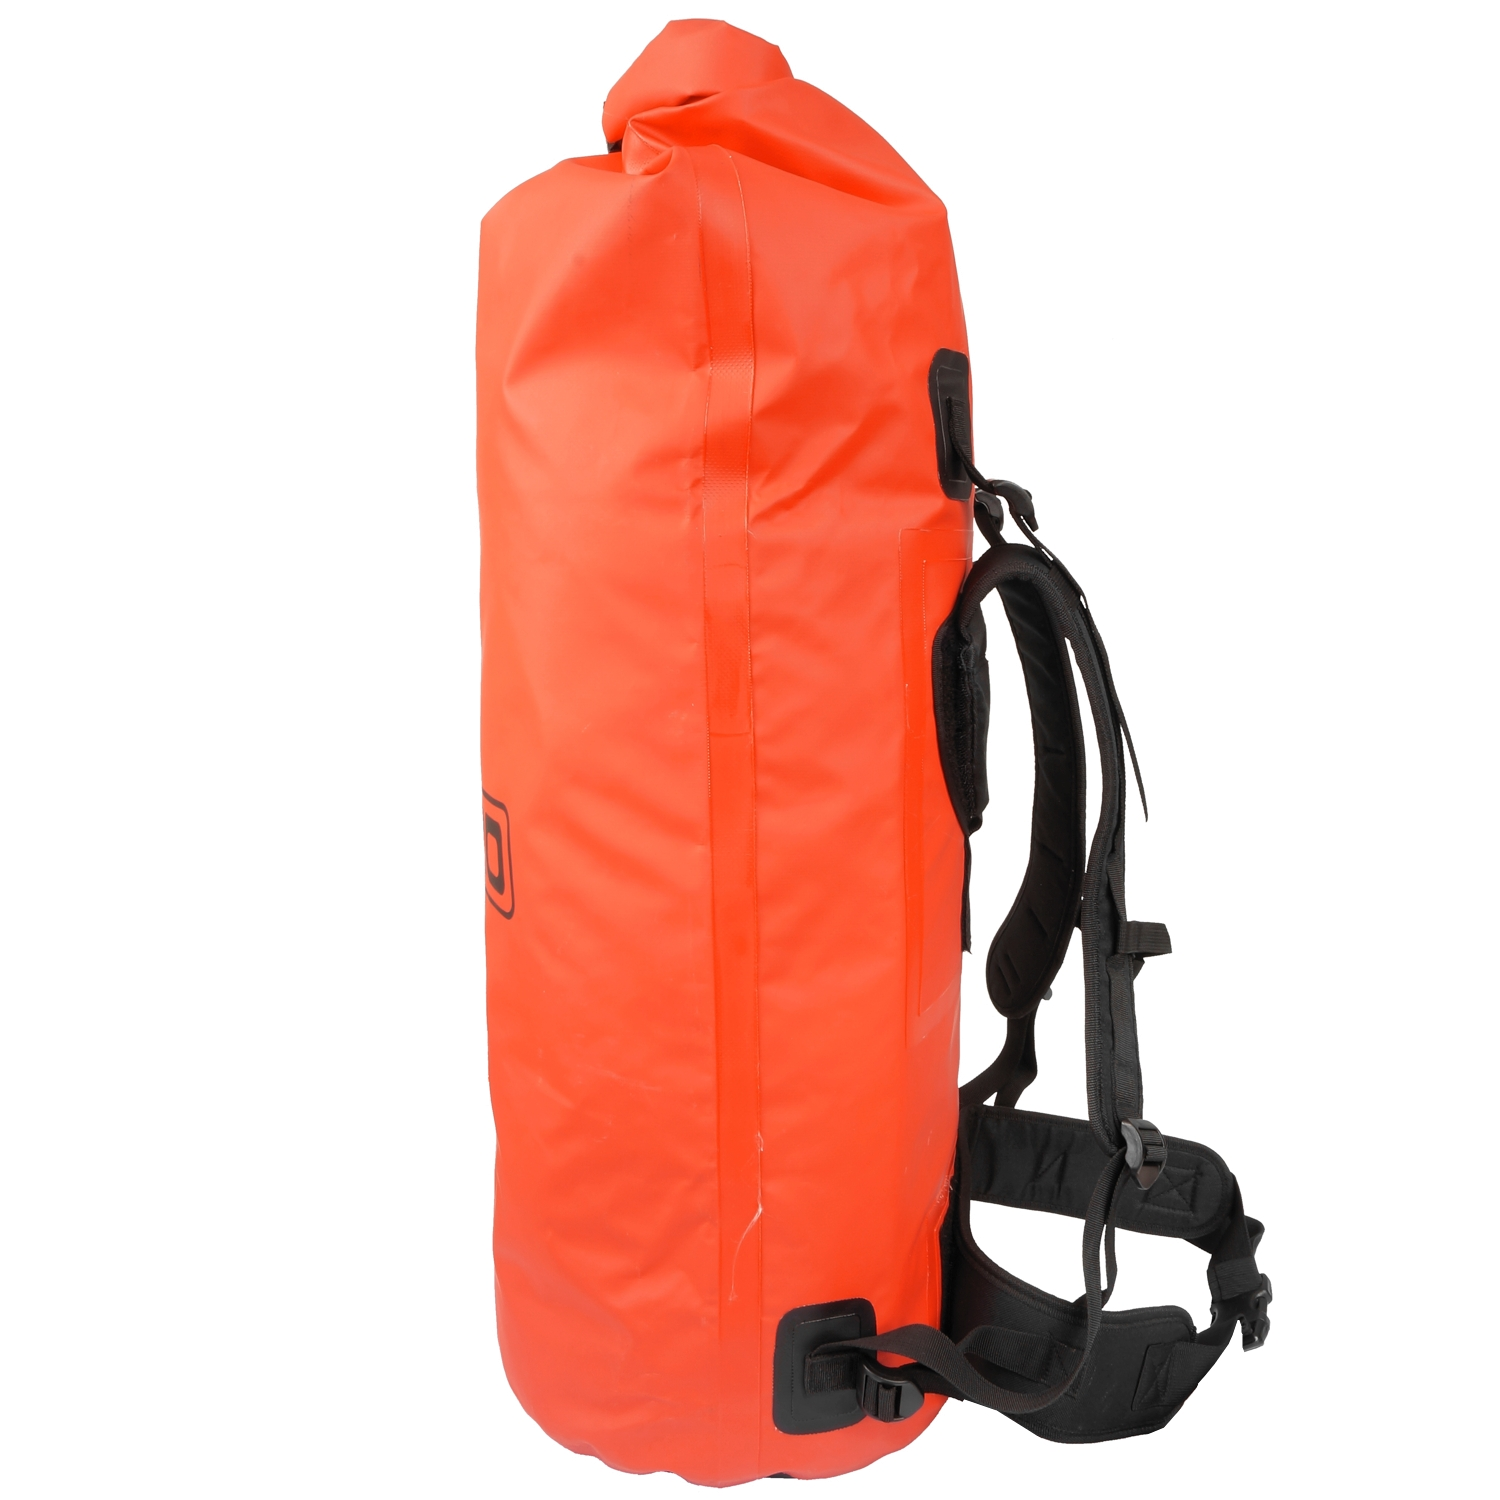 be20de8a03 ... 60L Dry Bag Rucksack Red - Side View ...